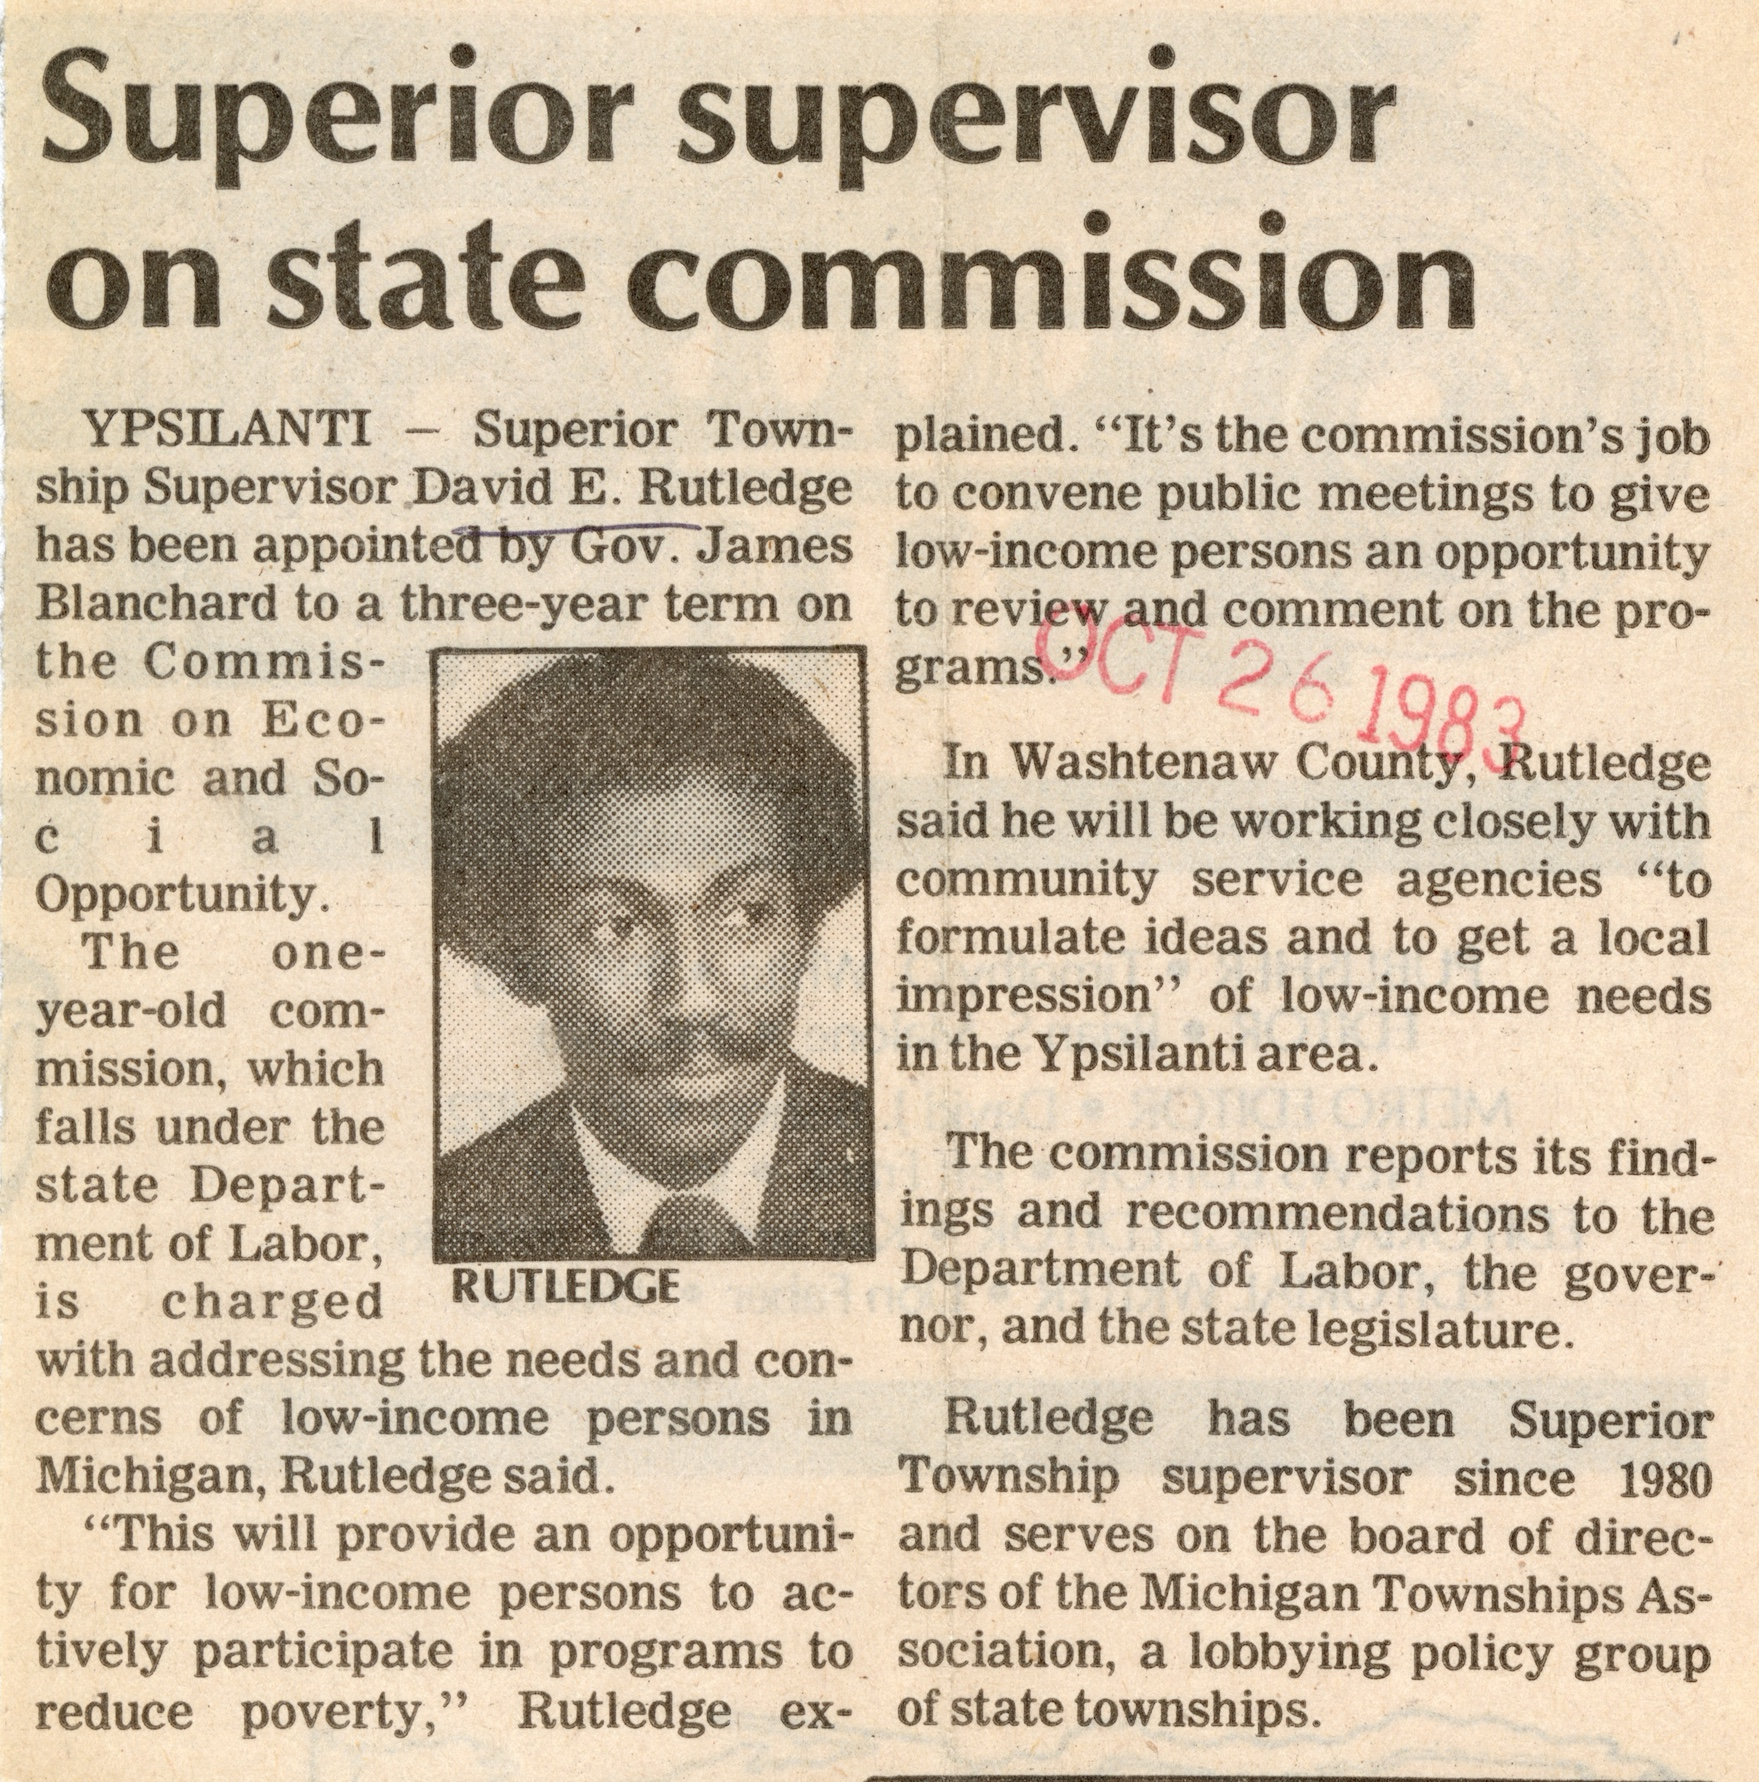 Superior Supervisor On State Commission image